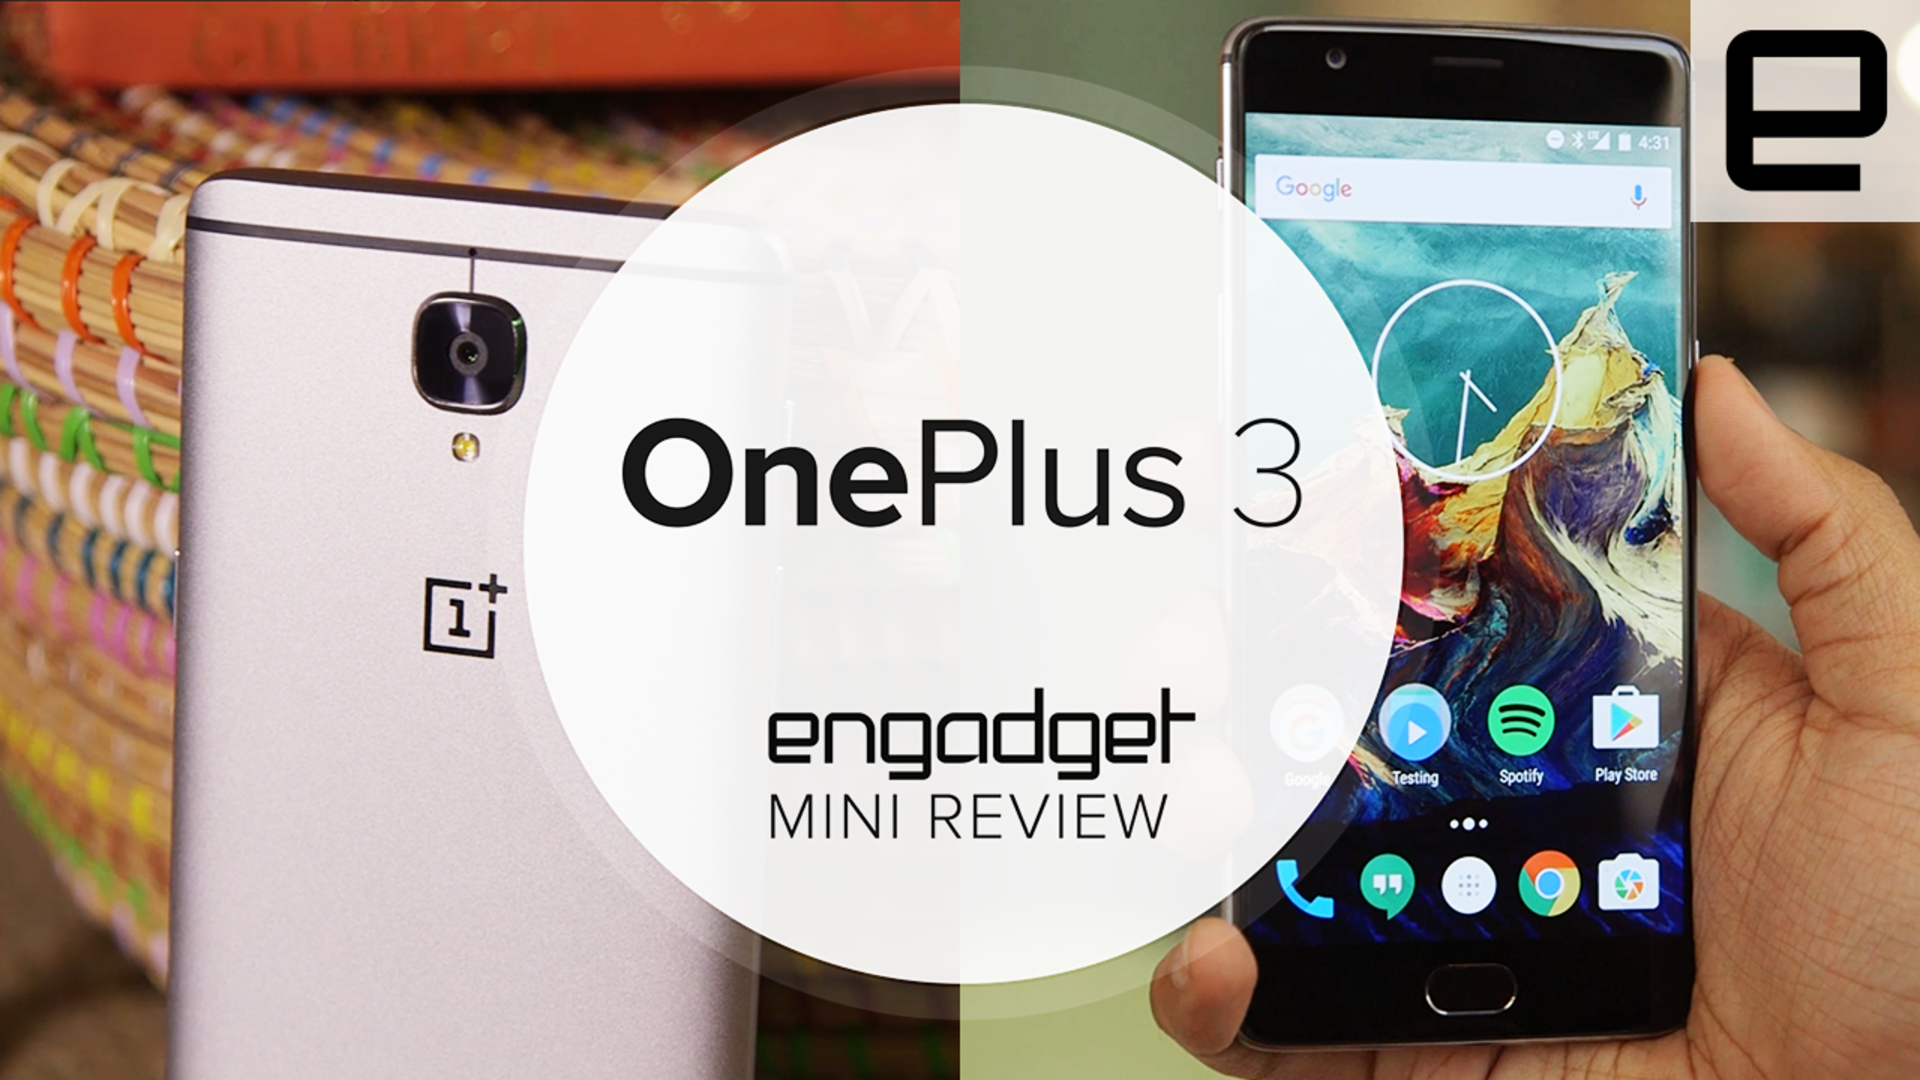 Mini review video: Our verdict on the OnePlus 3 in a minute